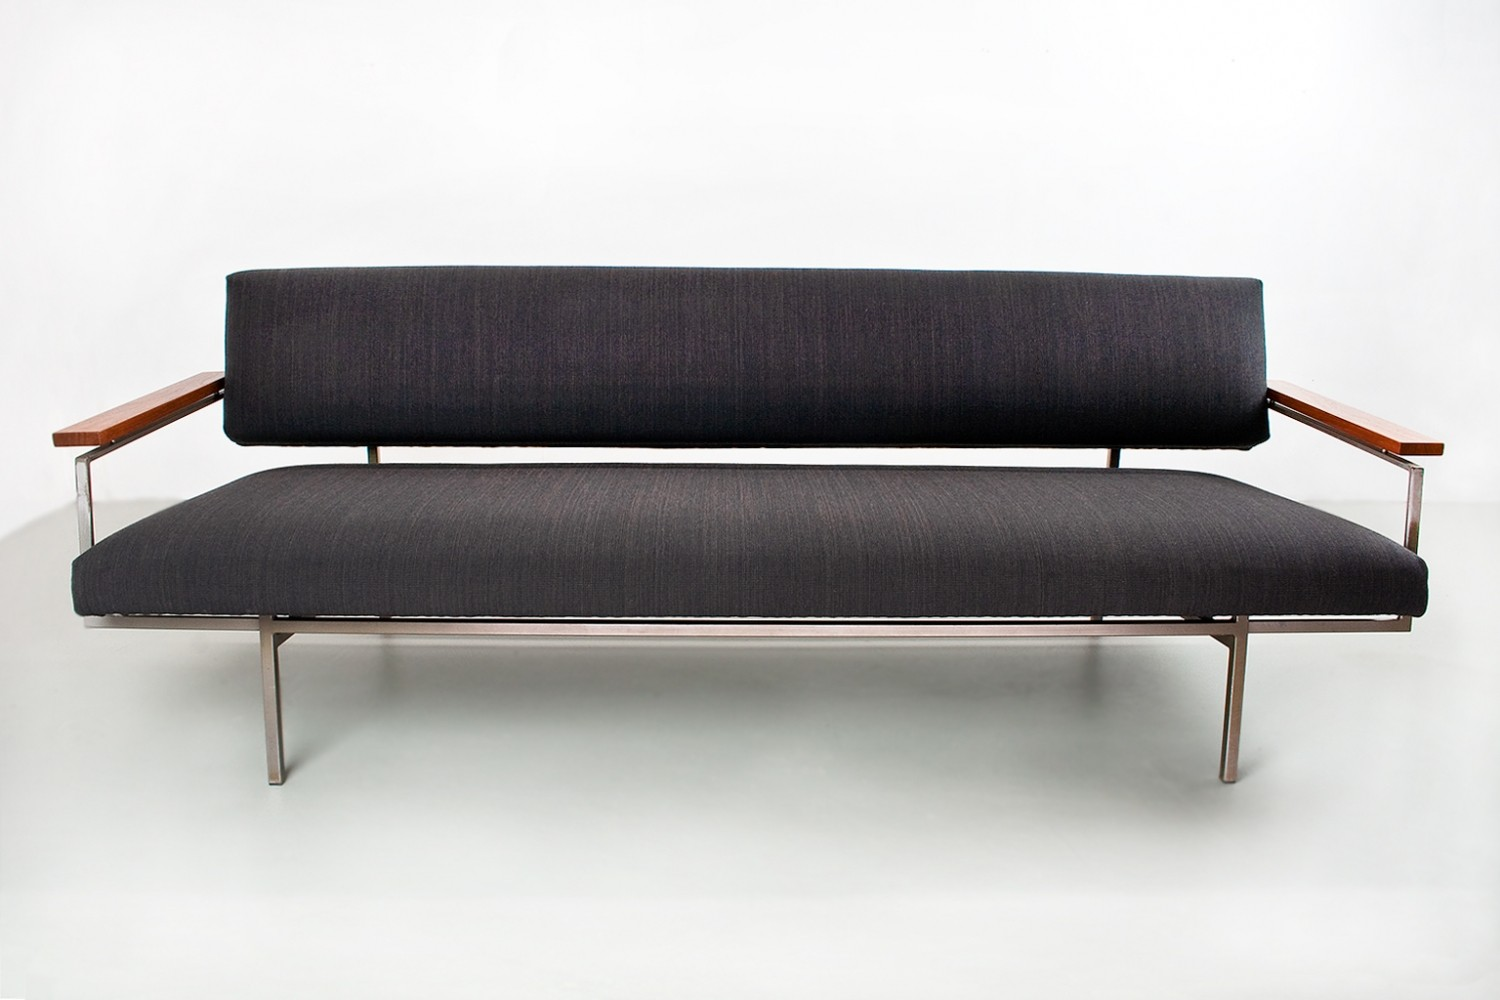 Rob Parry sofa model Lotus 75 in dark grey, teak & metal 1960s